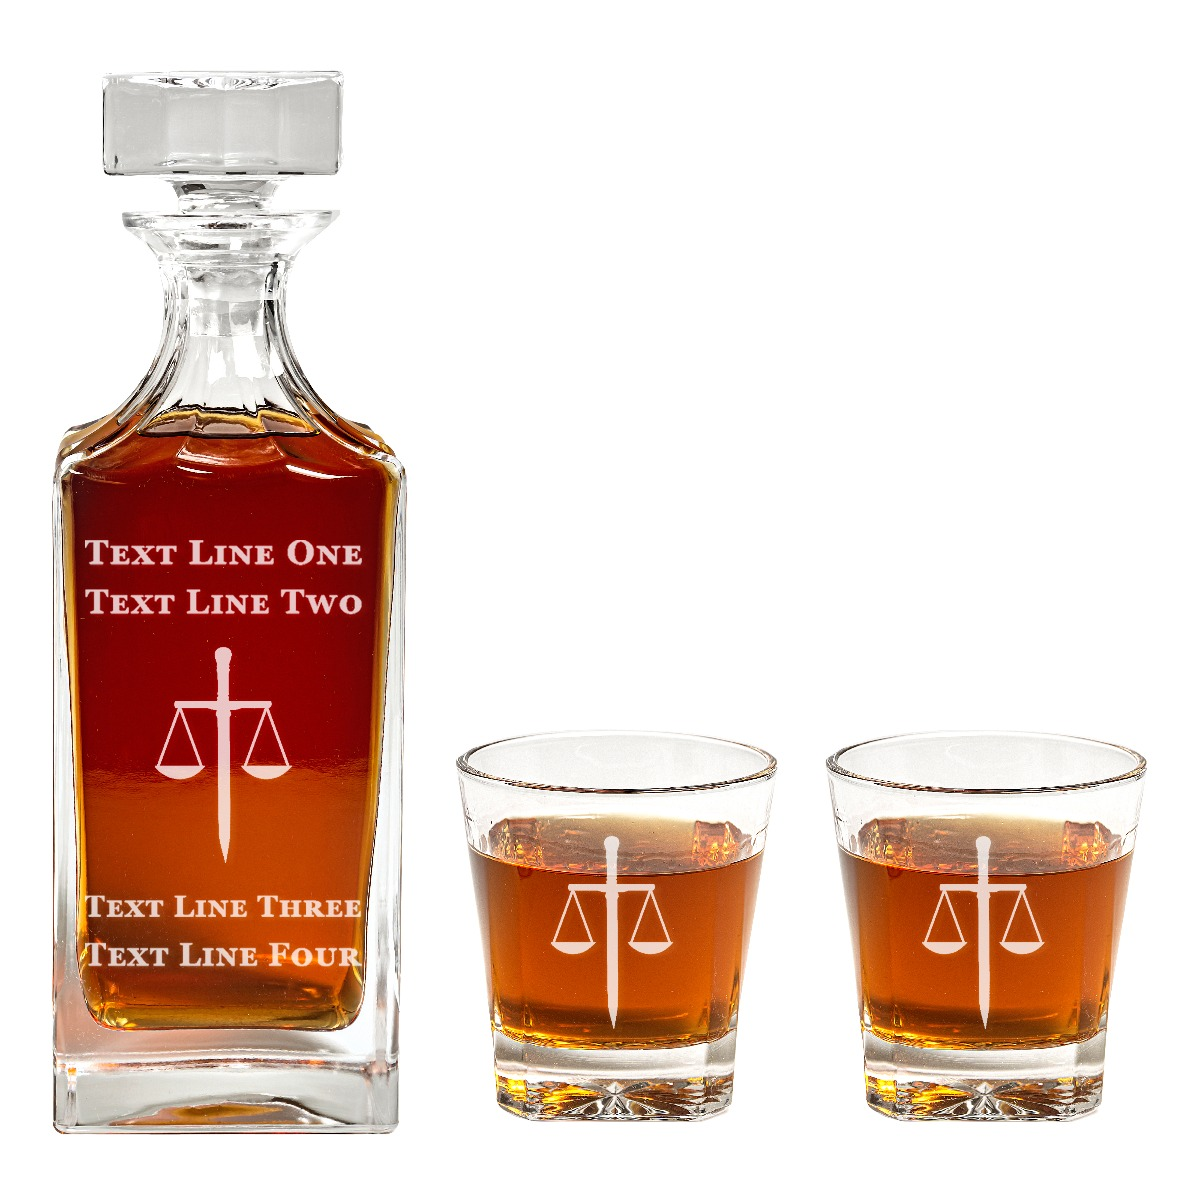 Engraved Lawyer Sword and Scales Glass Decanter Set